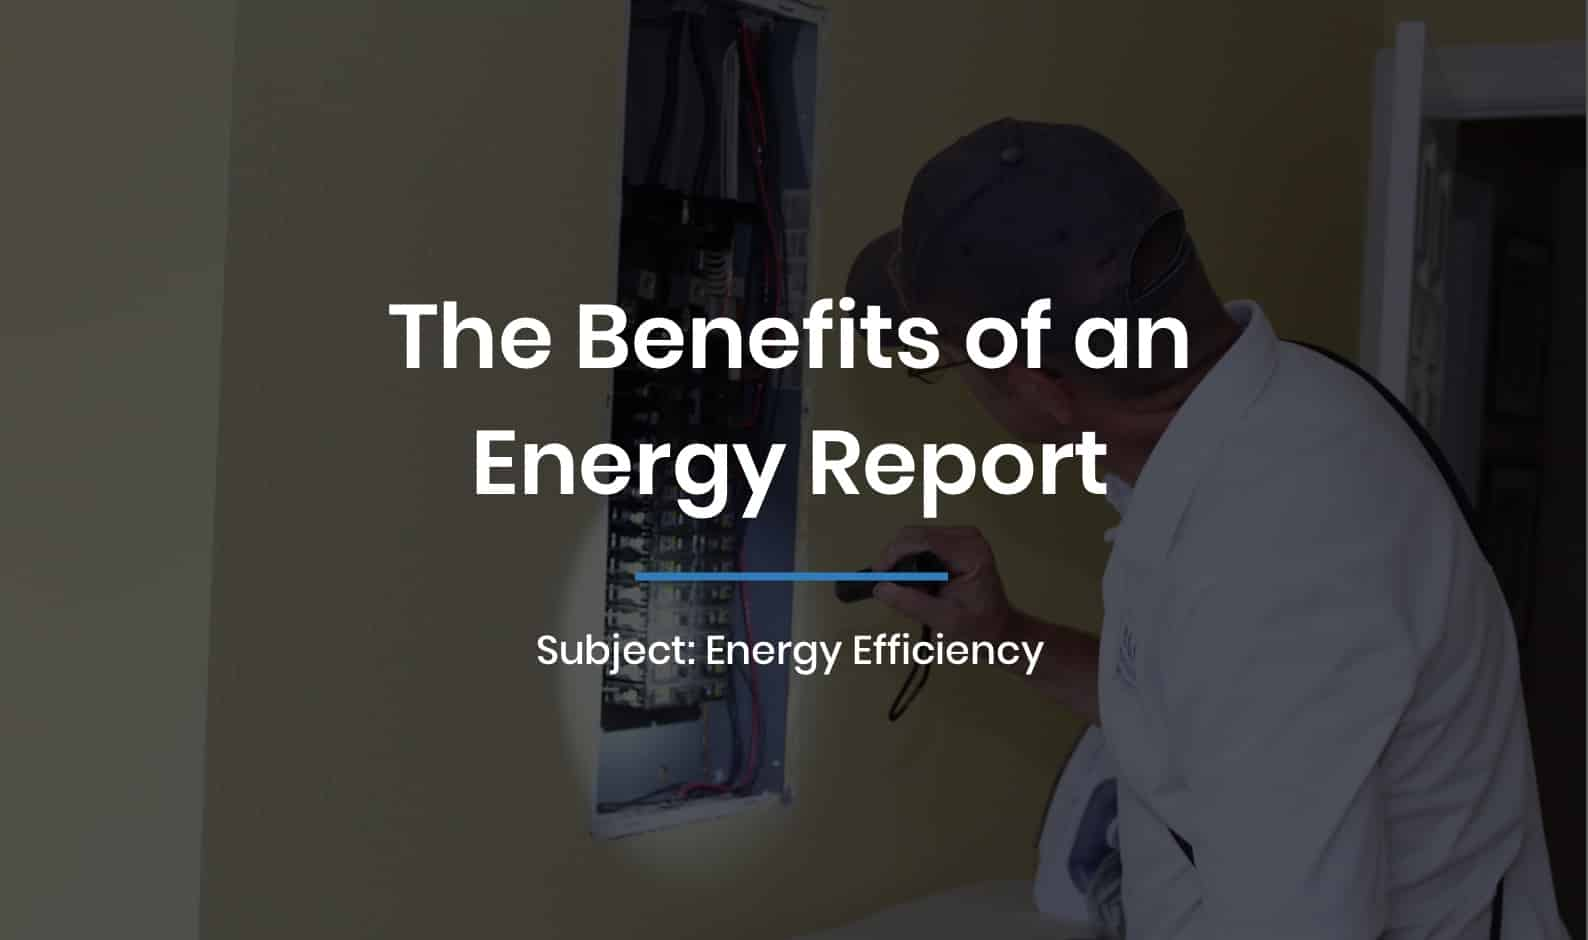 The Benefits of an Energy Report